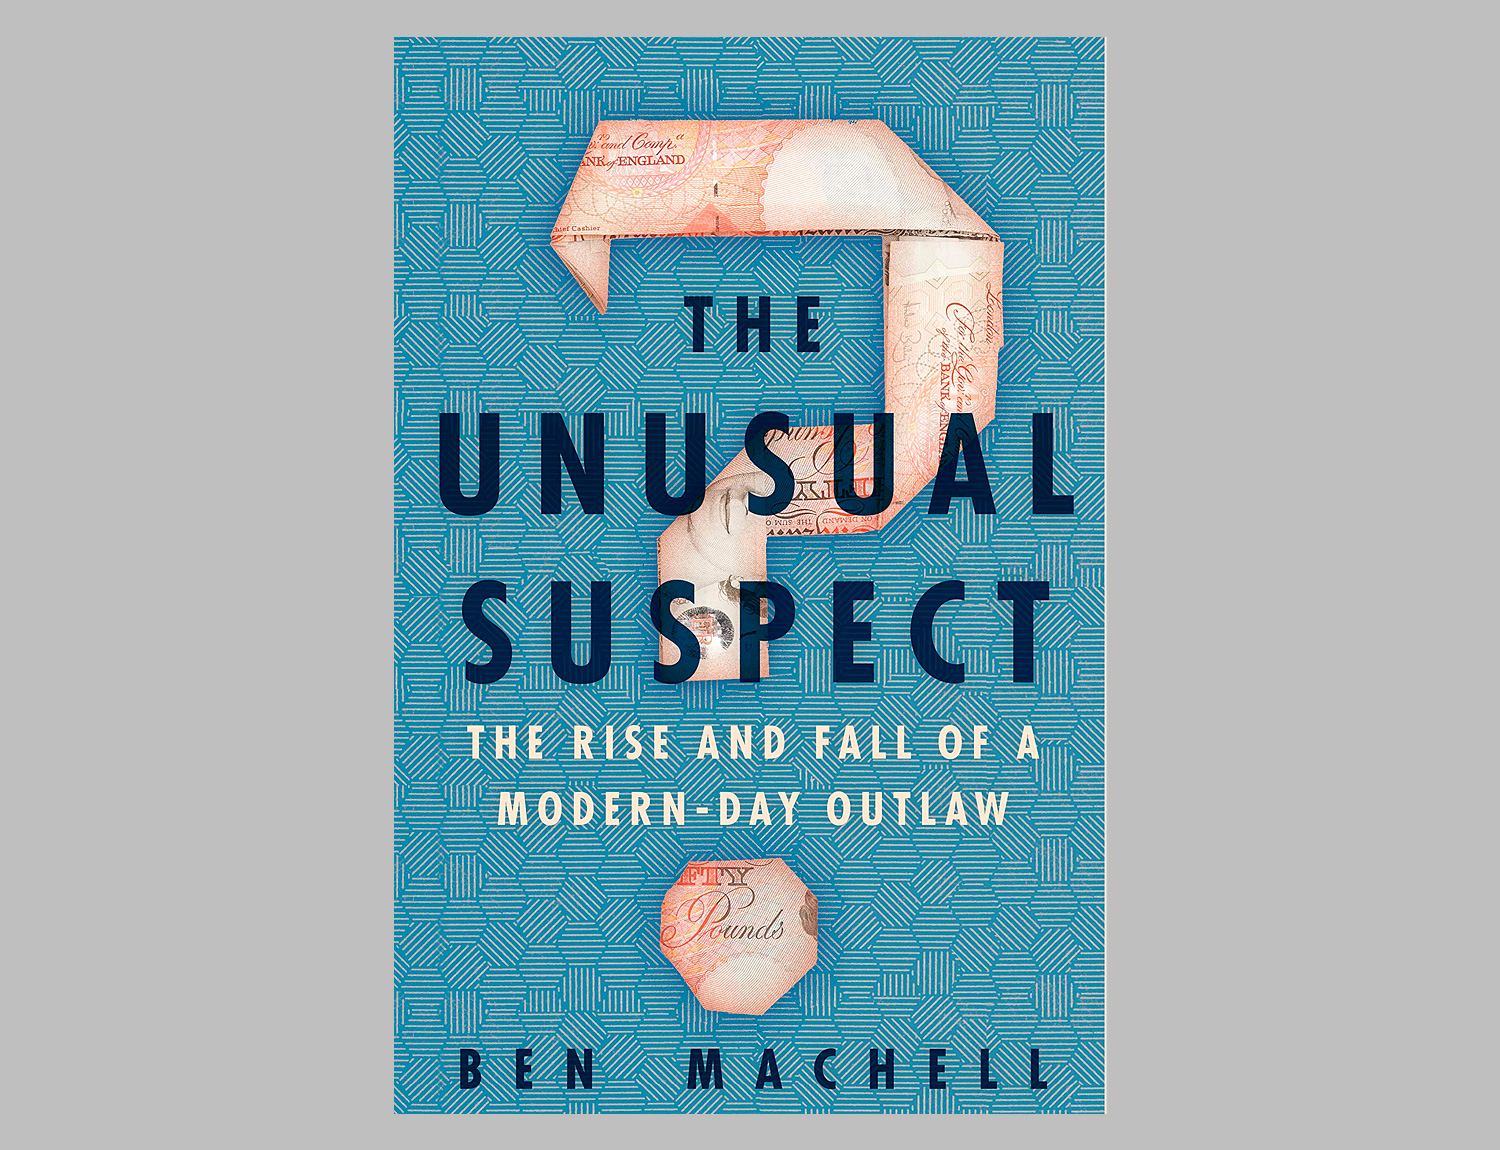 The Unusual Suspect: The Rise and Fall of a Modern-Day Outlaw at werd.com